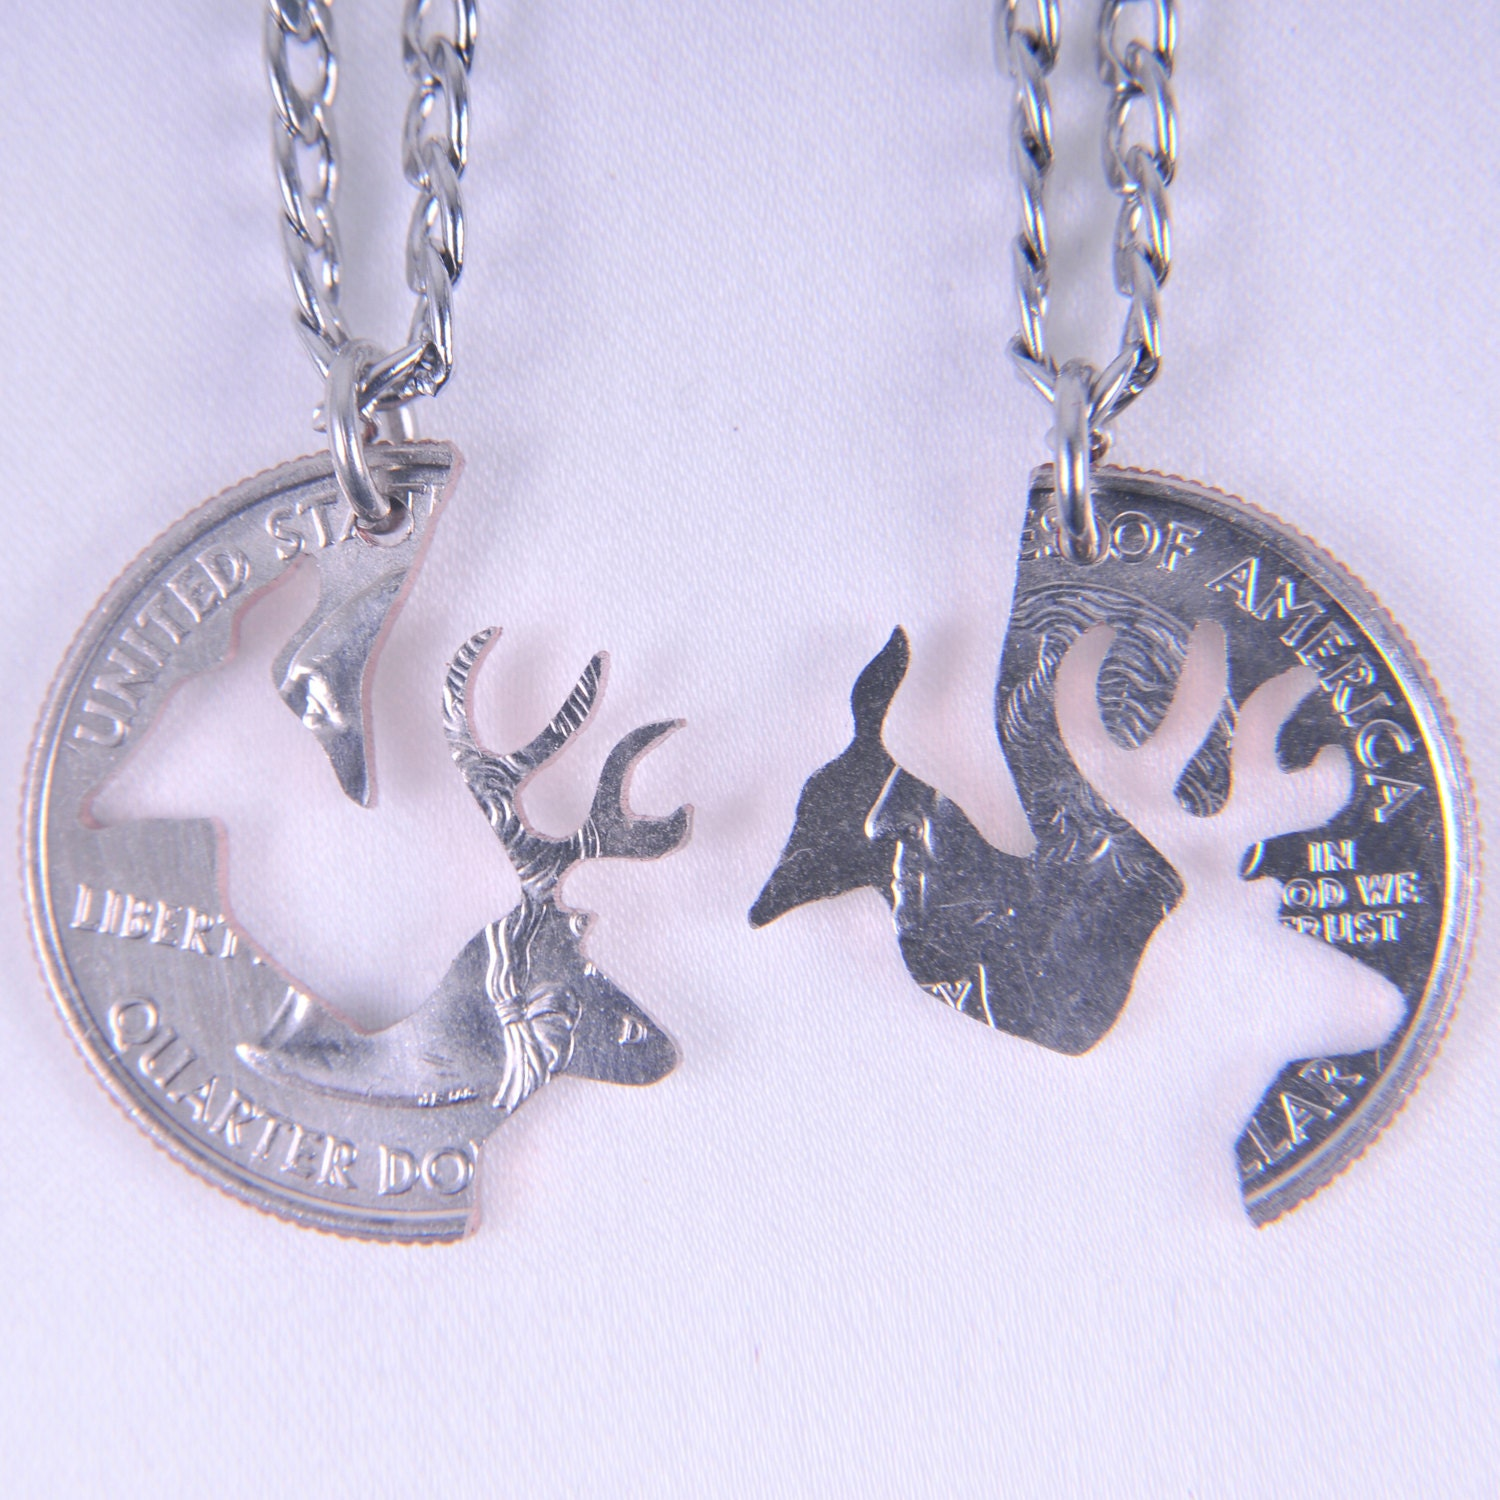 4dc6b9306a ... Set Couple Pendant: HS001-Buck And Doe Set Of Couple Jewelry Pendant  Necklaces